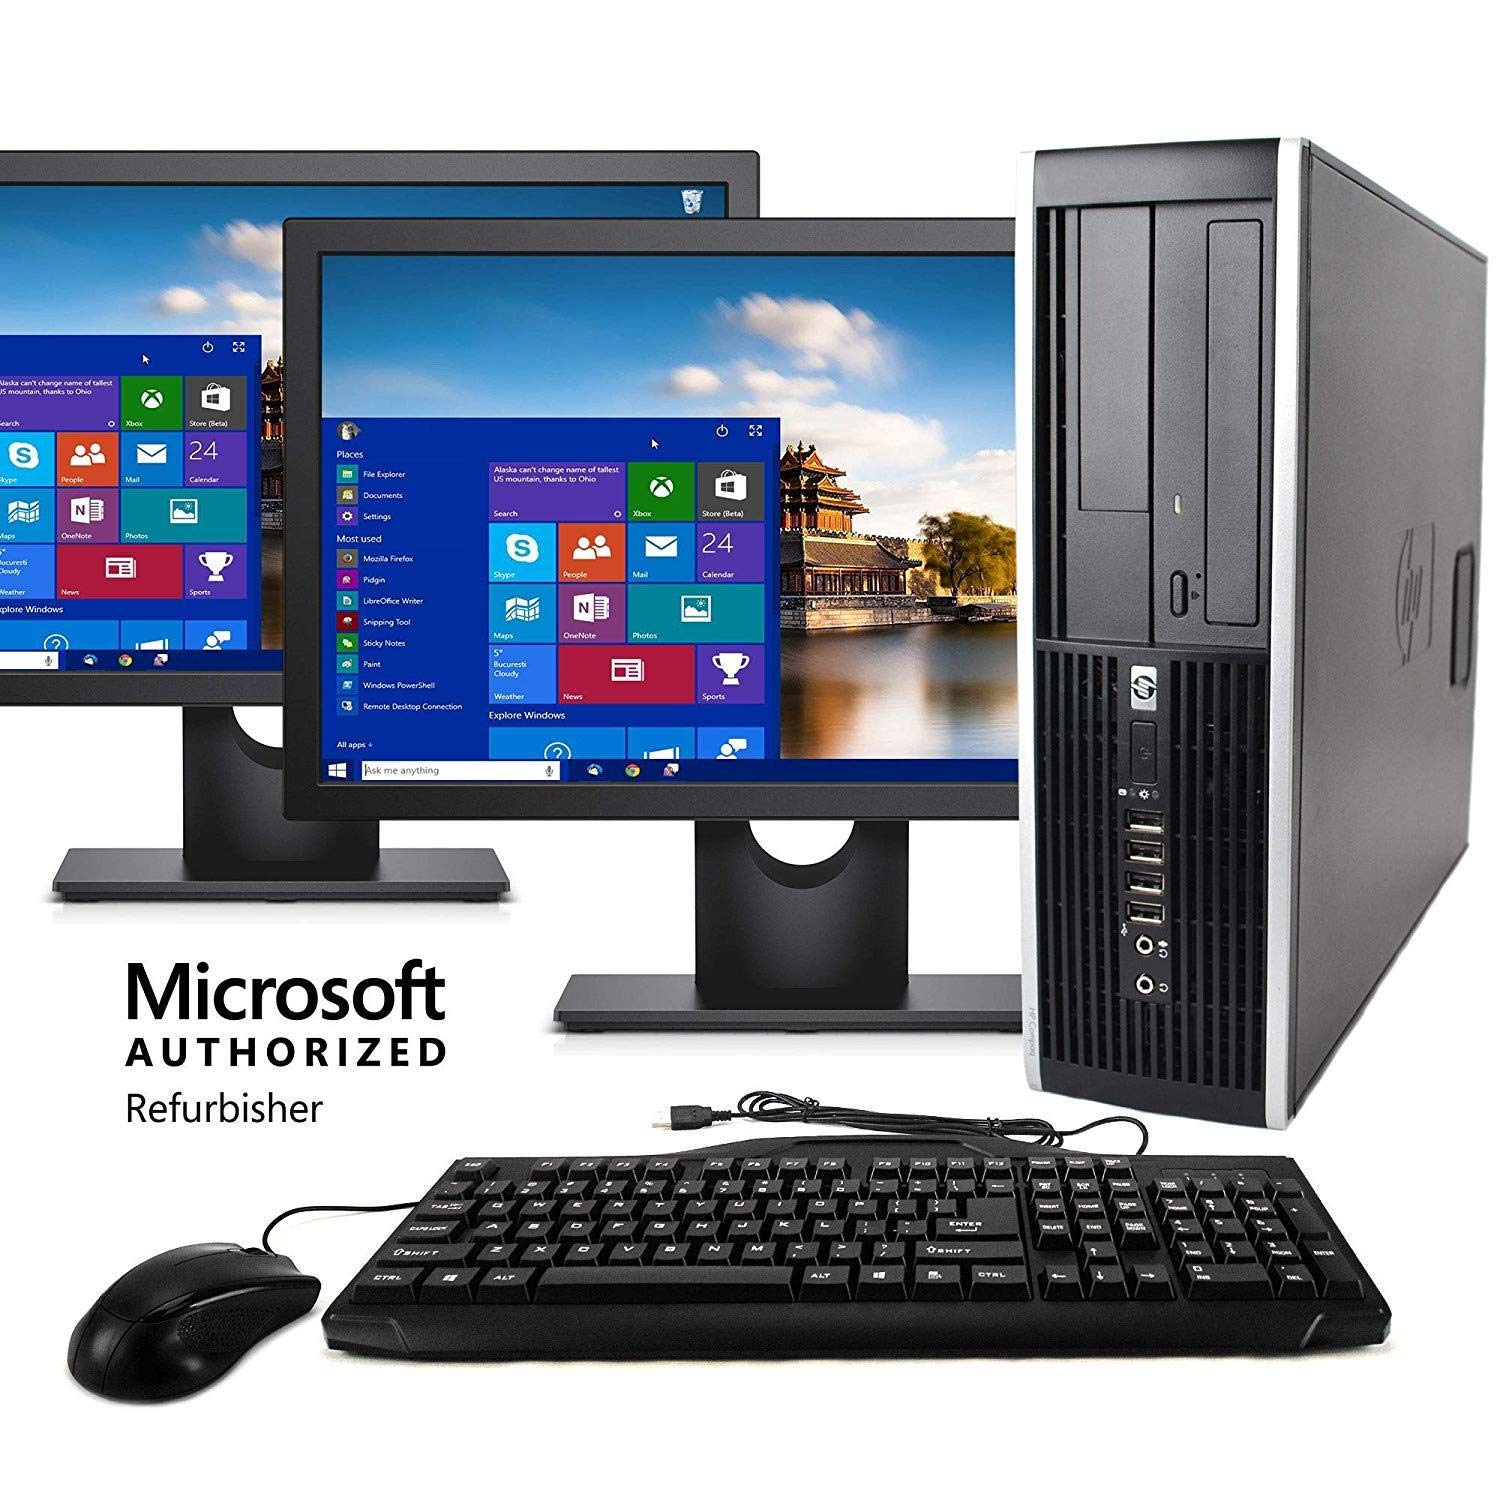 HP Elite Desktop Computer, Intel Core i5 3.1GHz, 8GB RAM, 1TB SATA HDD, Keyboard & Mouse, Wi-Fi, Dual 19in LCD Monitors (Brands Vary), DVD-ROM, Windows 10, (Renewed) by HP